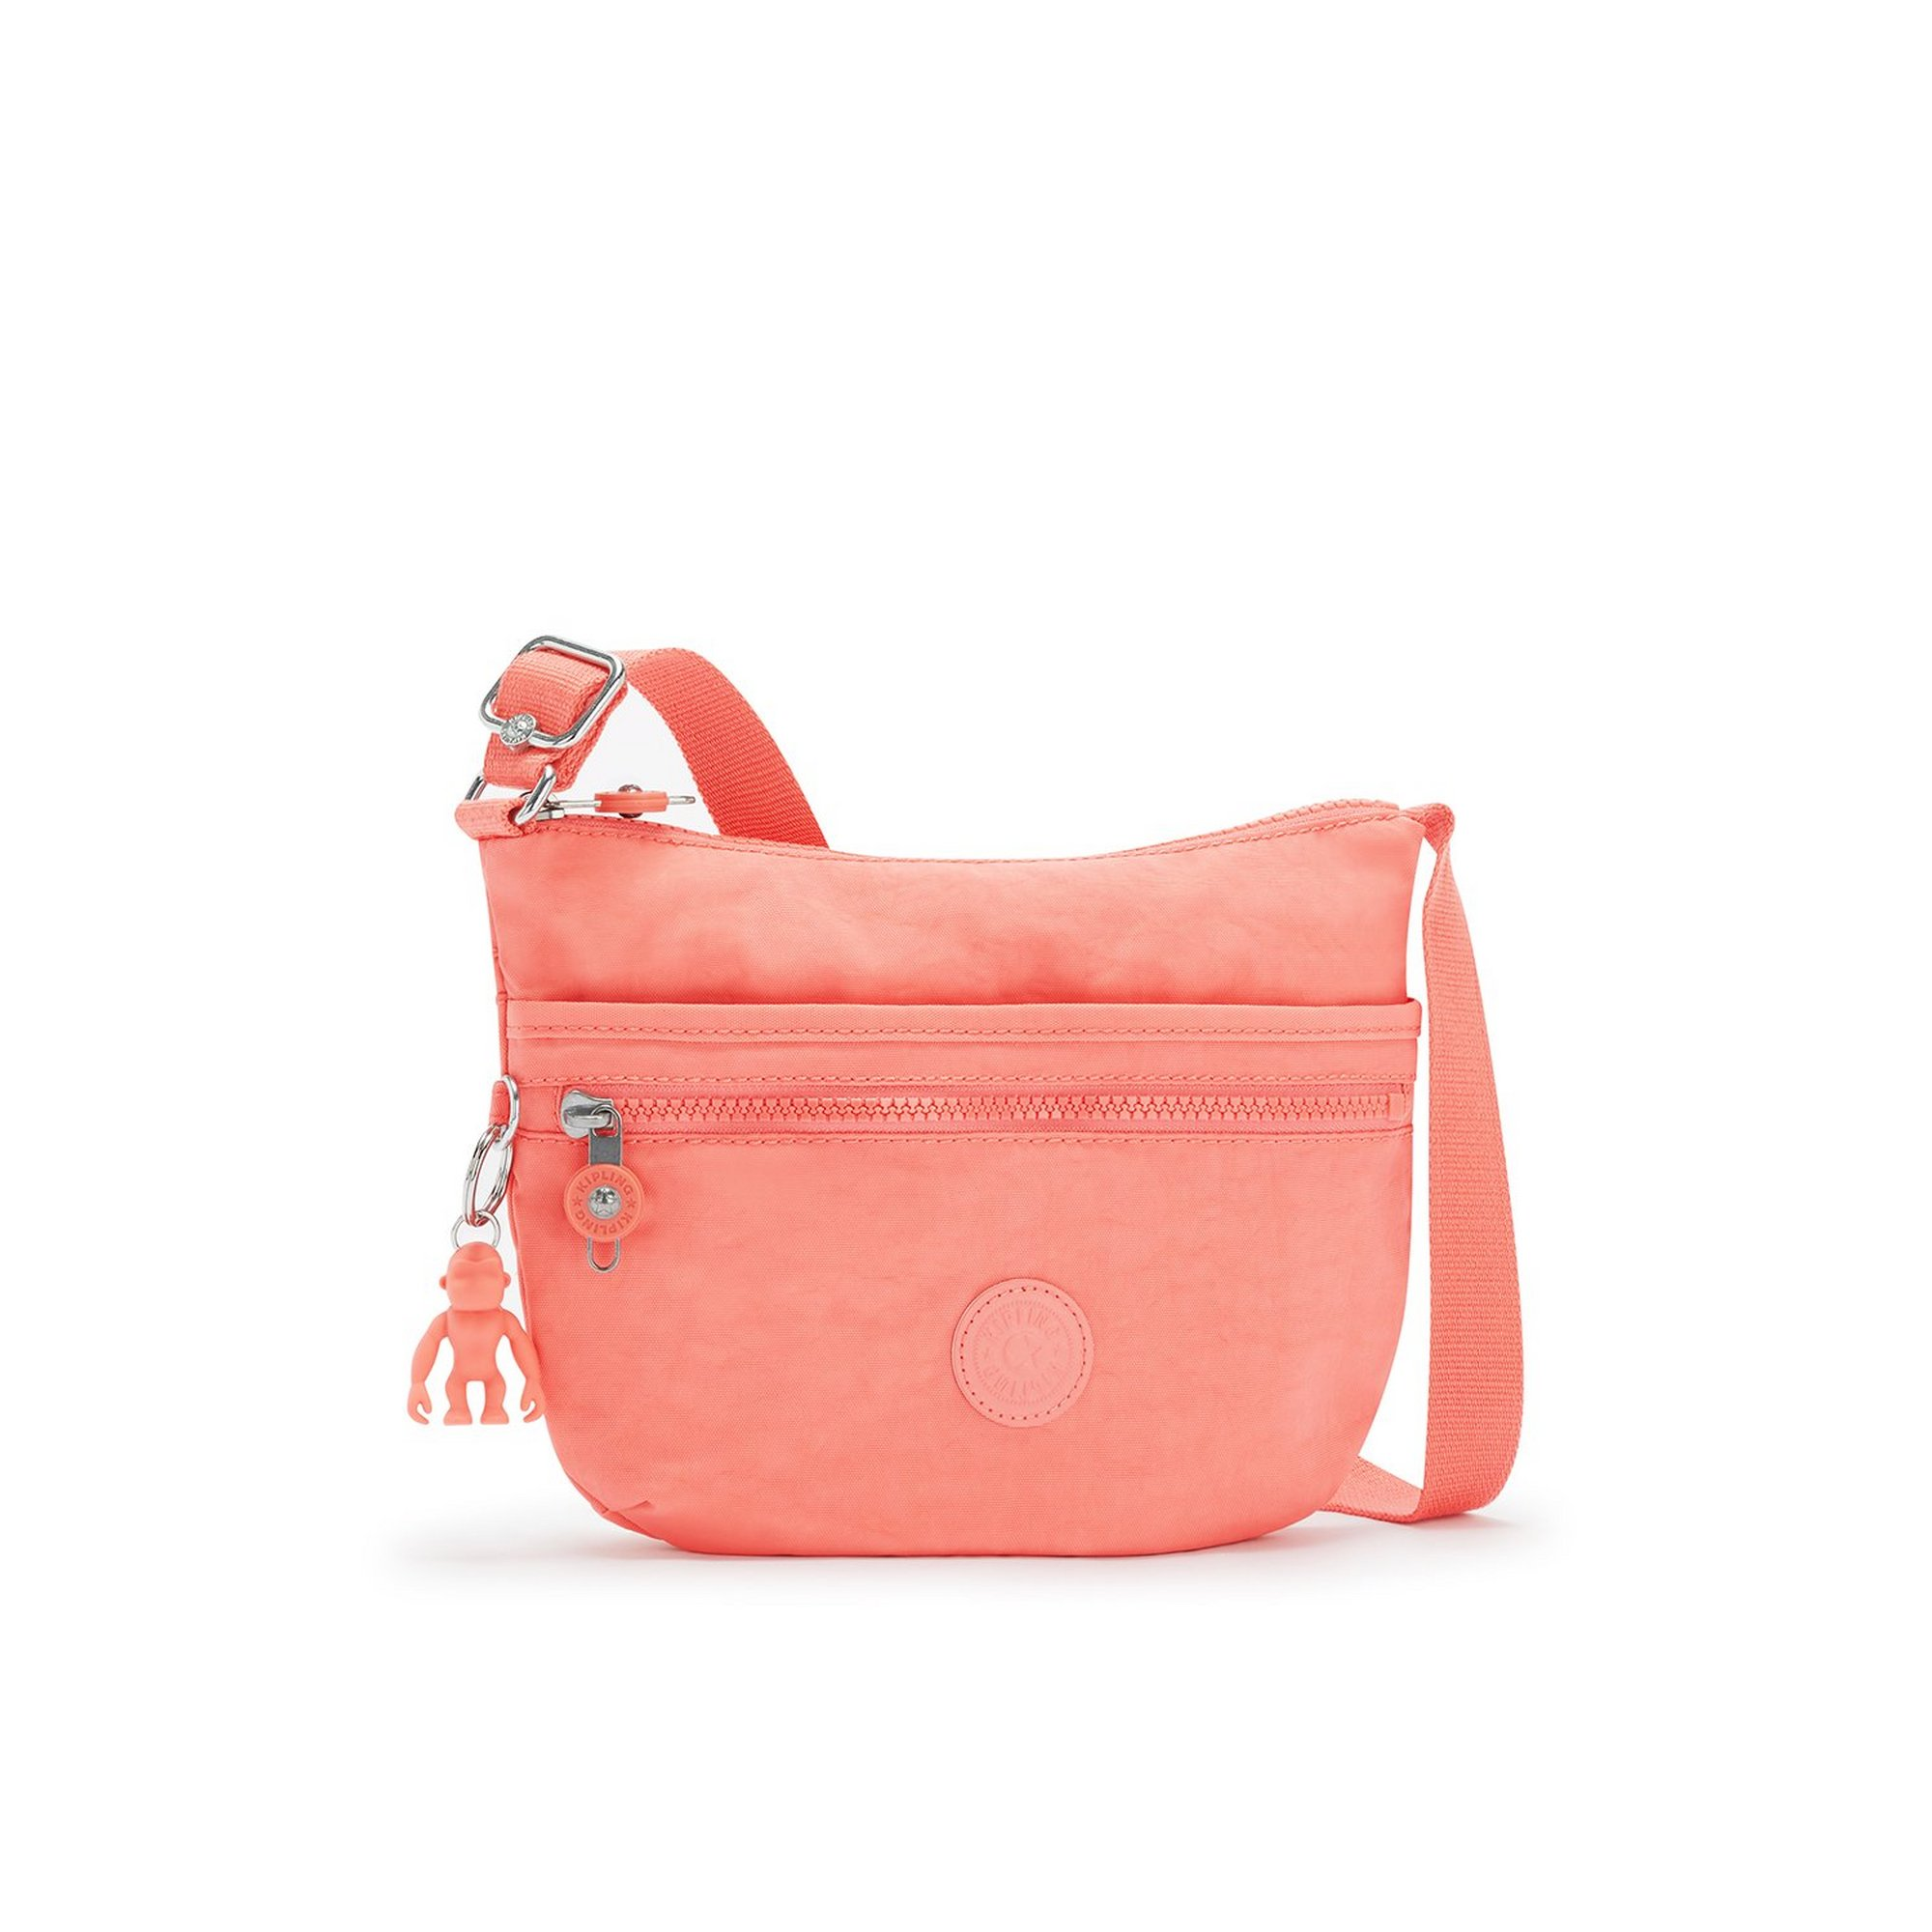 Image of Kipling Arto Fresh Coral Cross Body Bag